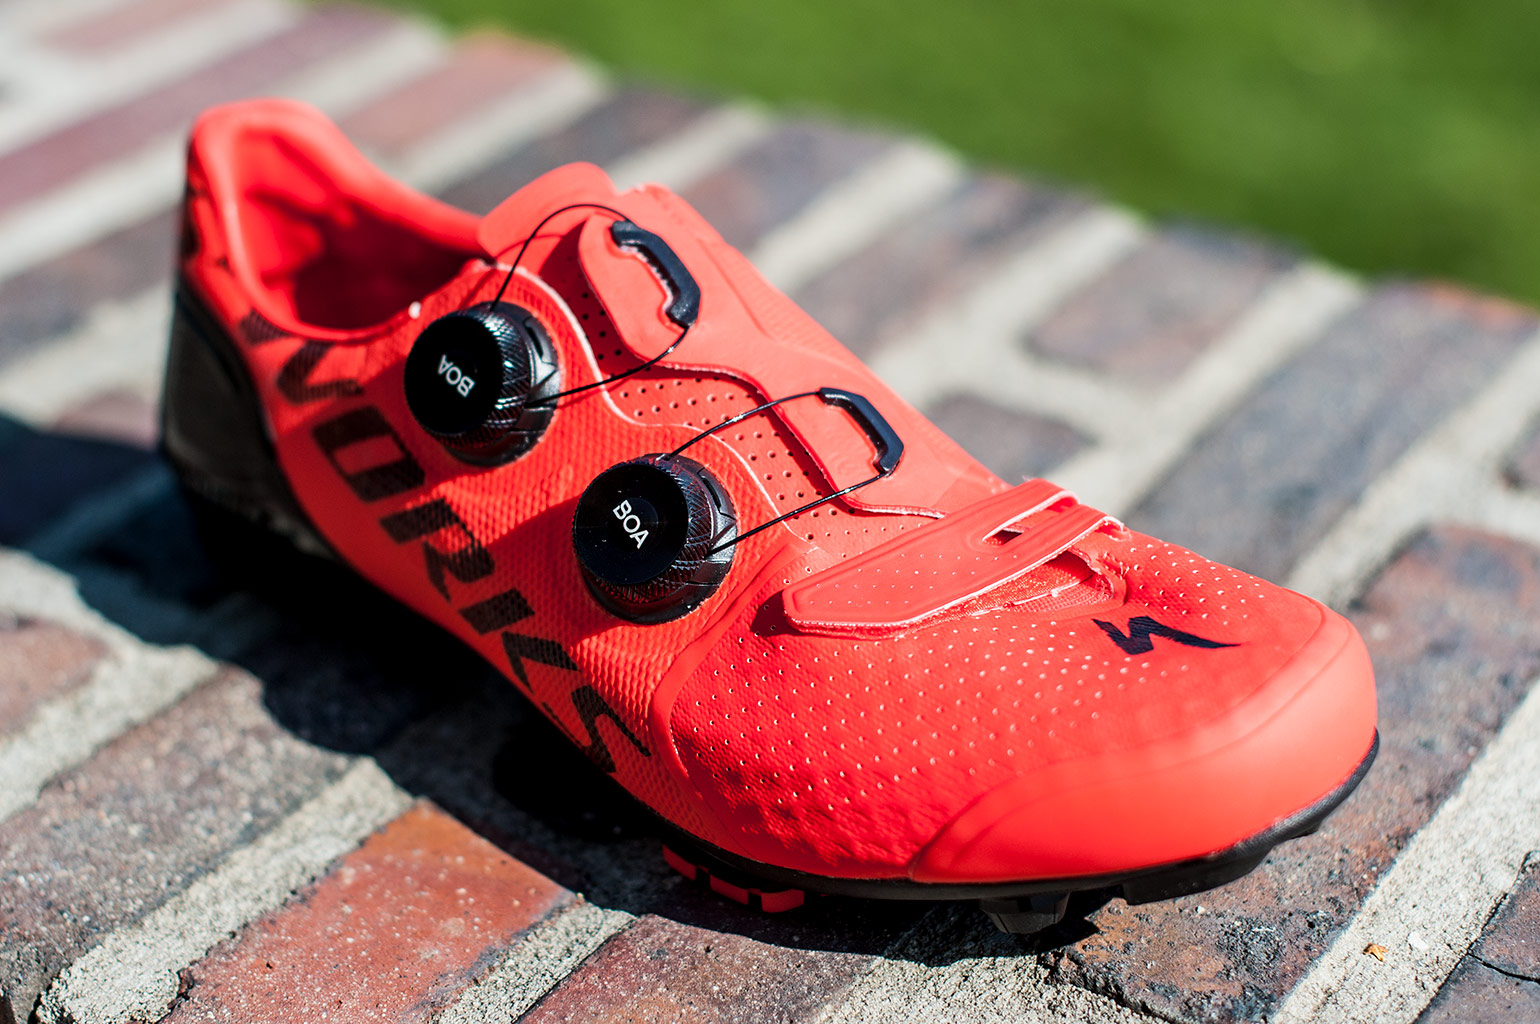 2019 S Works 7 Mtn Bike shoes Weight Weenies